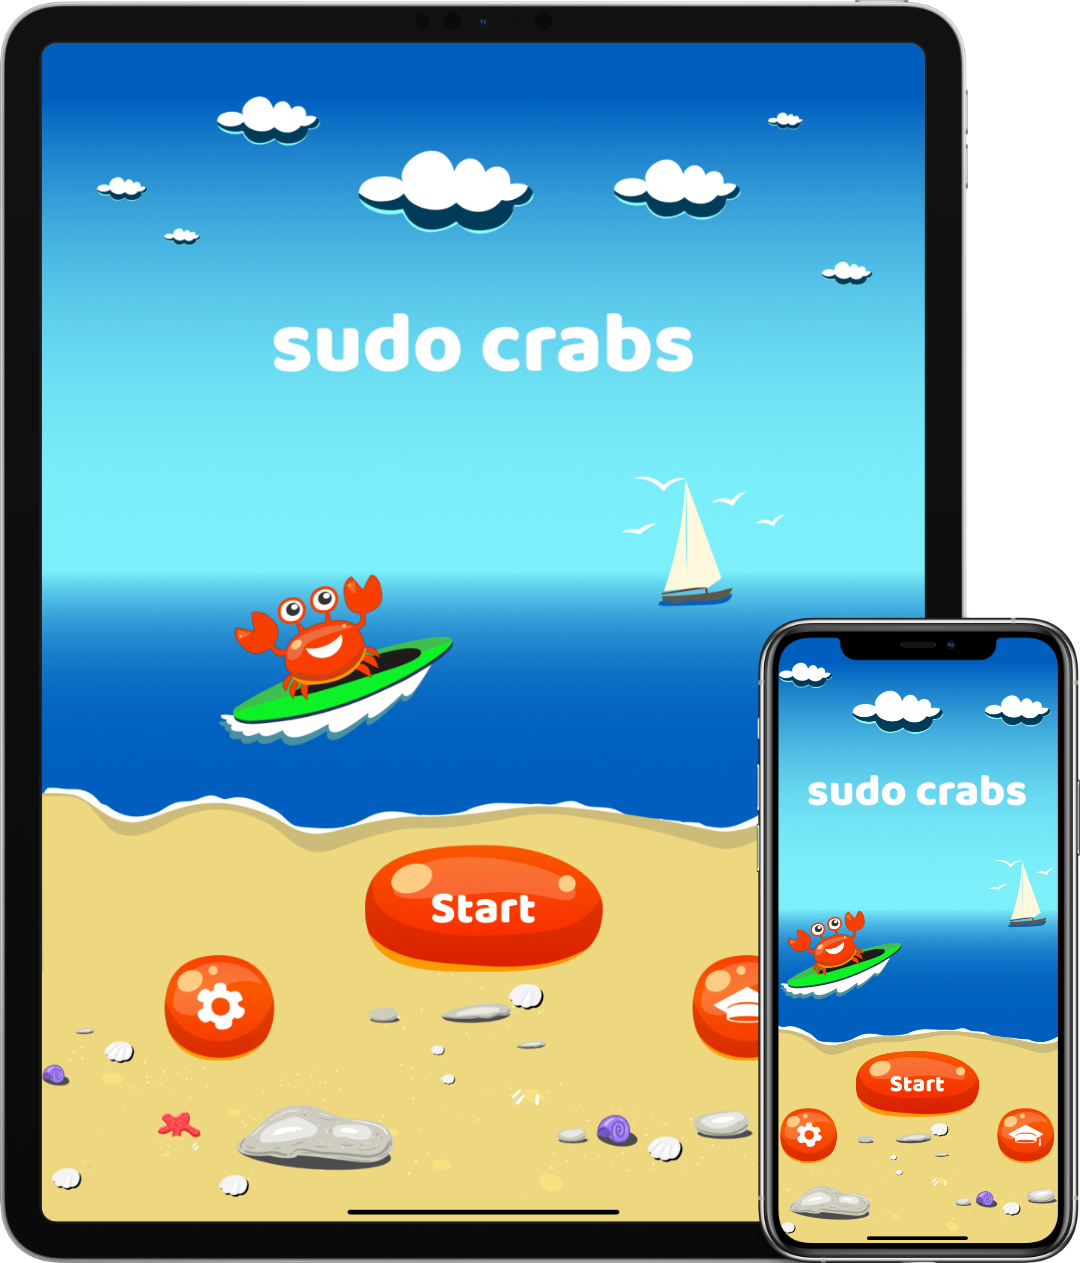 Sudo Crabs Screenshots